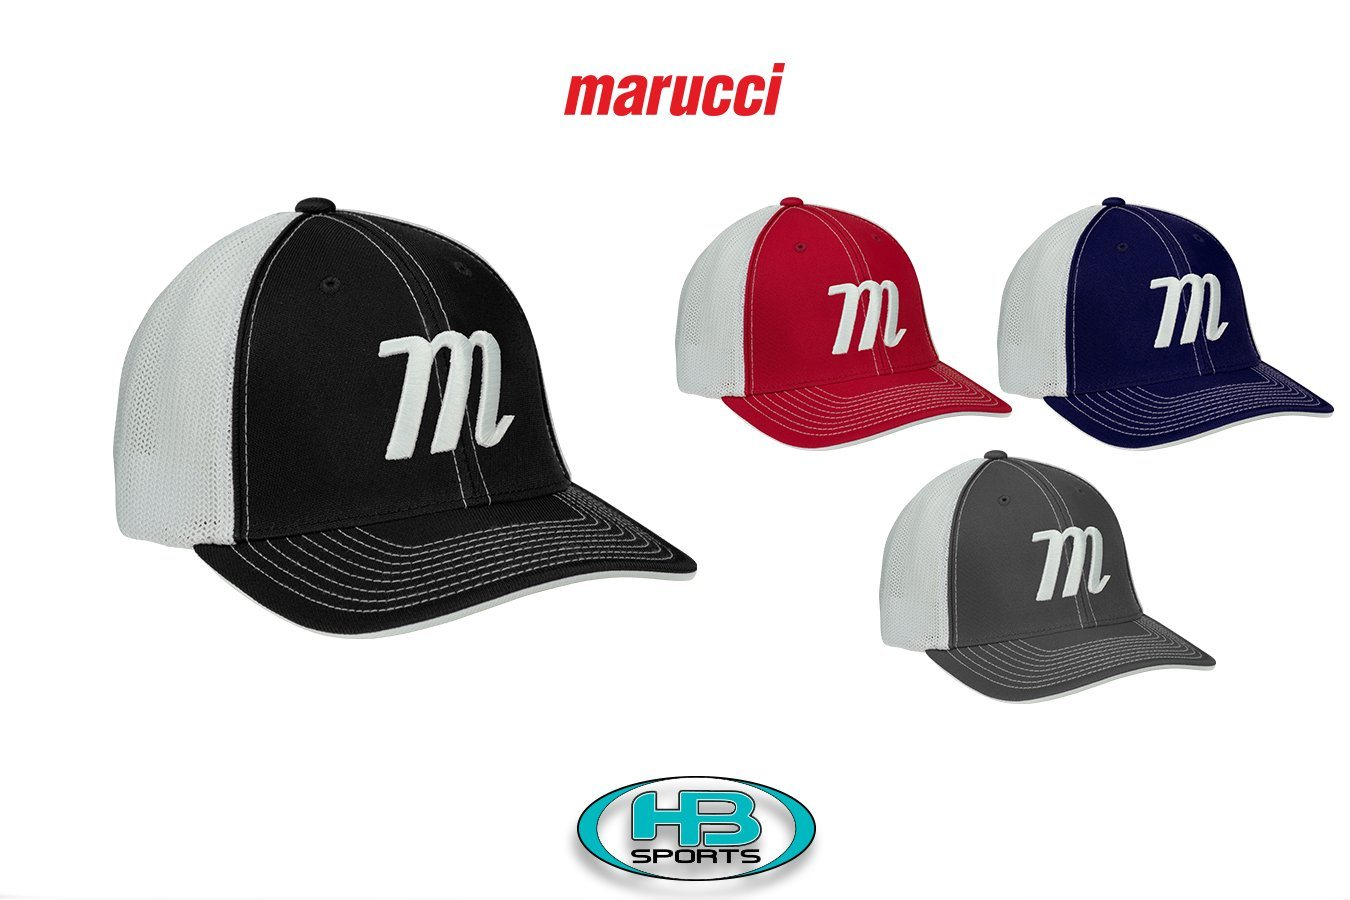 bd48aaf5d4e Marucci M Logo Trucker Hats with Free Shipping